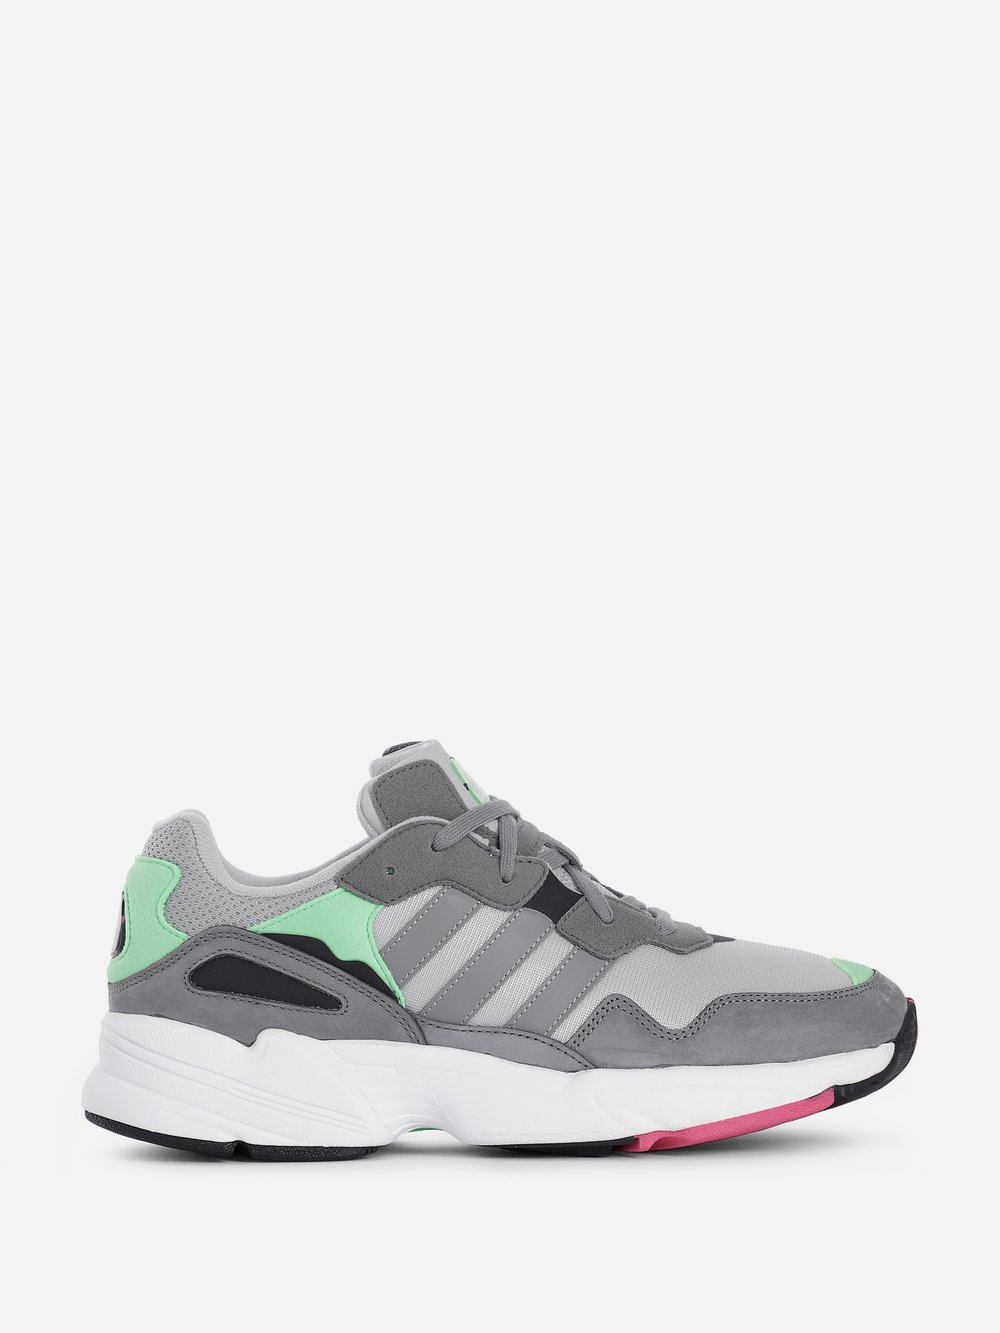 best service 1289f 8f70f Adidas. Sneakers New Collection SS19